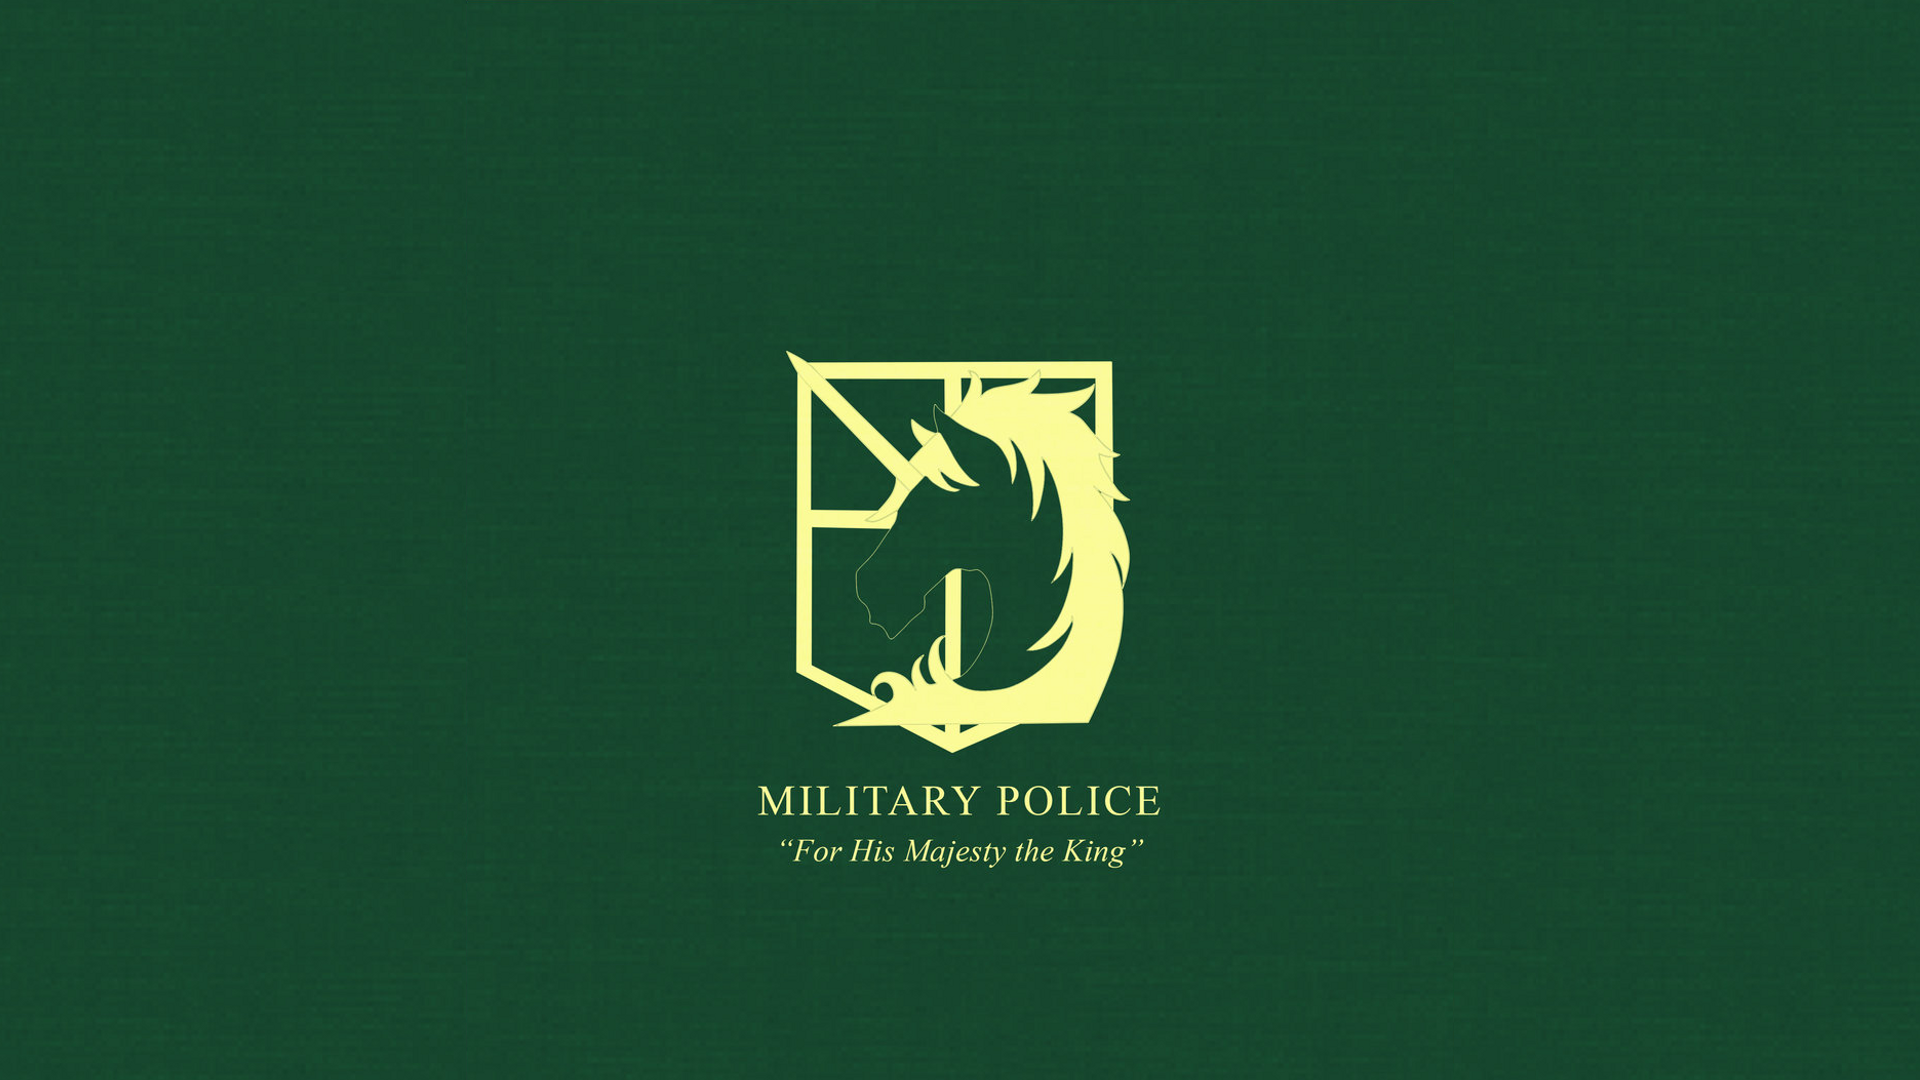 Attack on Titan Military Police Wallpaper by Imxset21